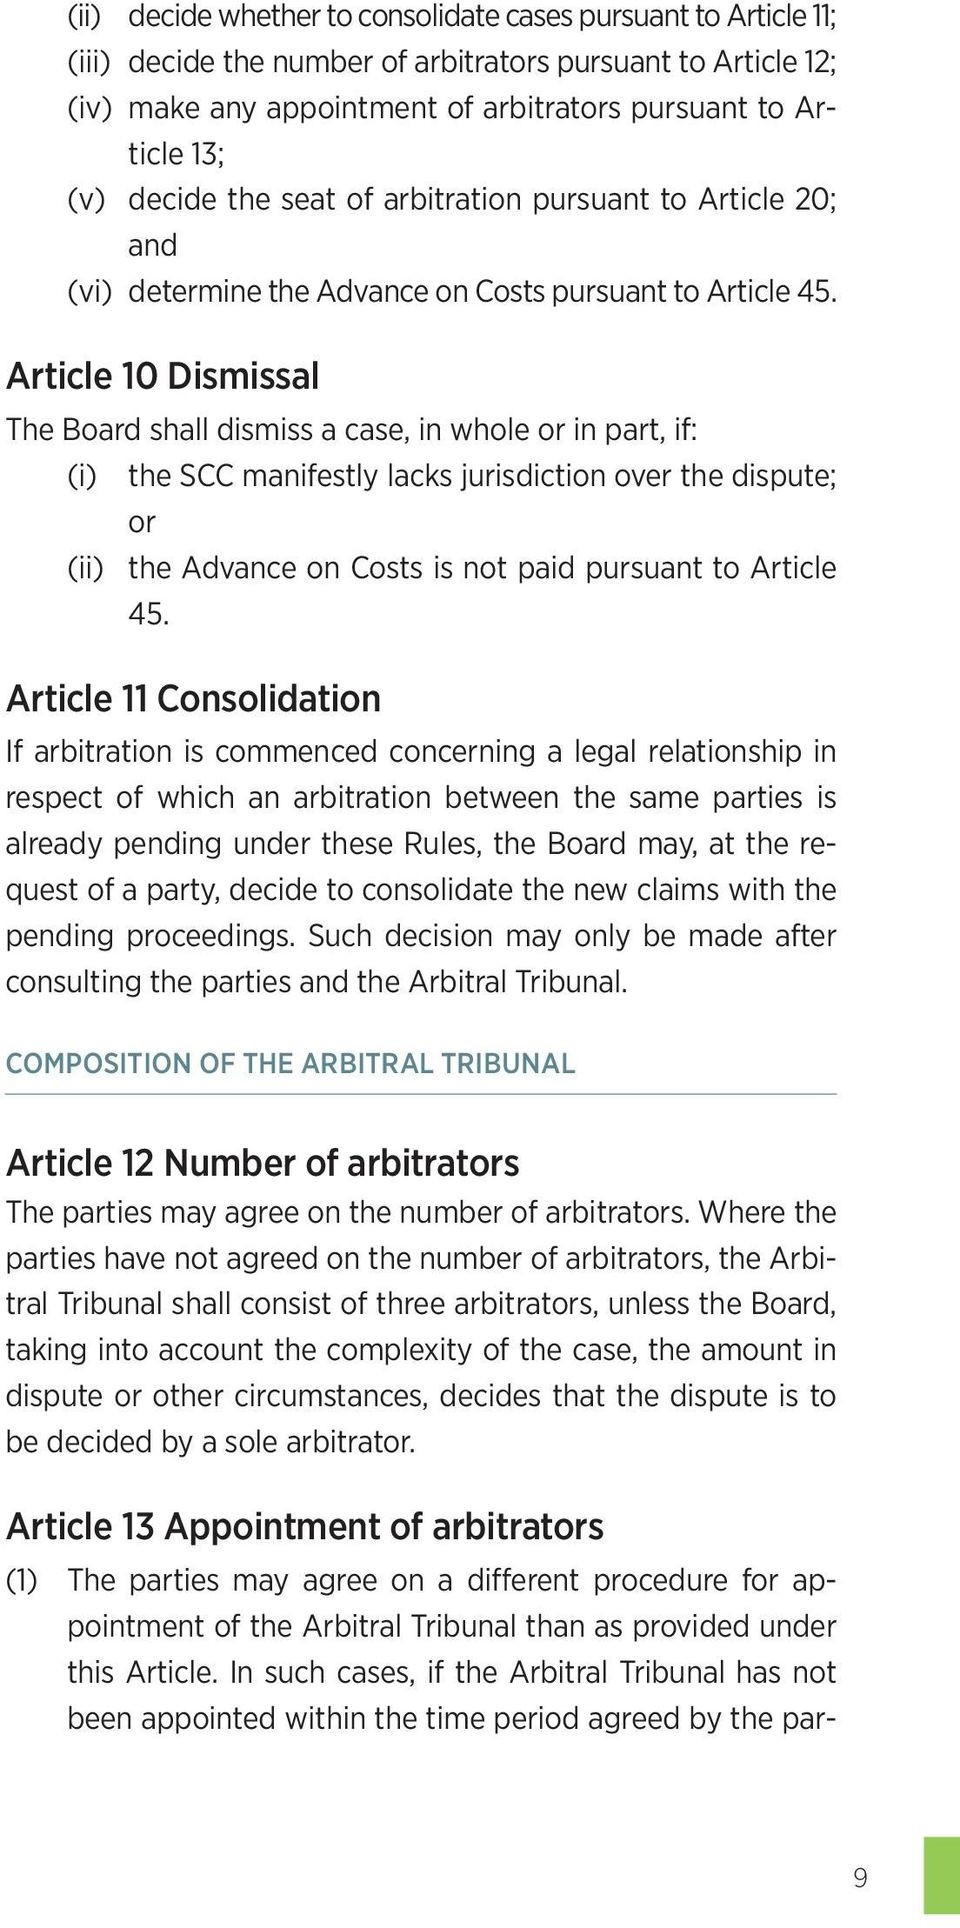 Article 10 Dismissal The Board shall dismiss a case, in whole or in part, if: (i) the SCC manifestly lacks jurisdiction over the dispute; or (ii) the Advance on Costs is not paid pursuant to Article